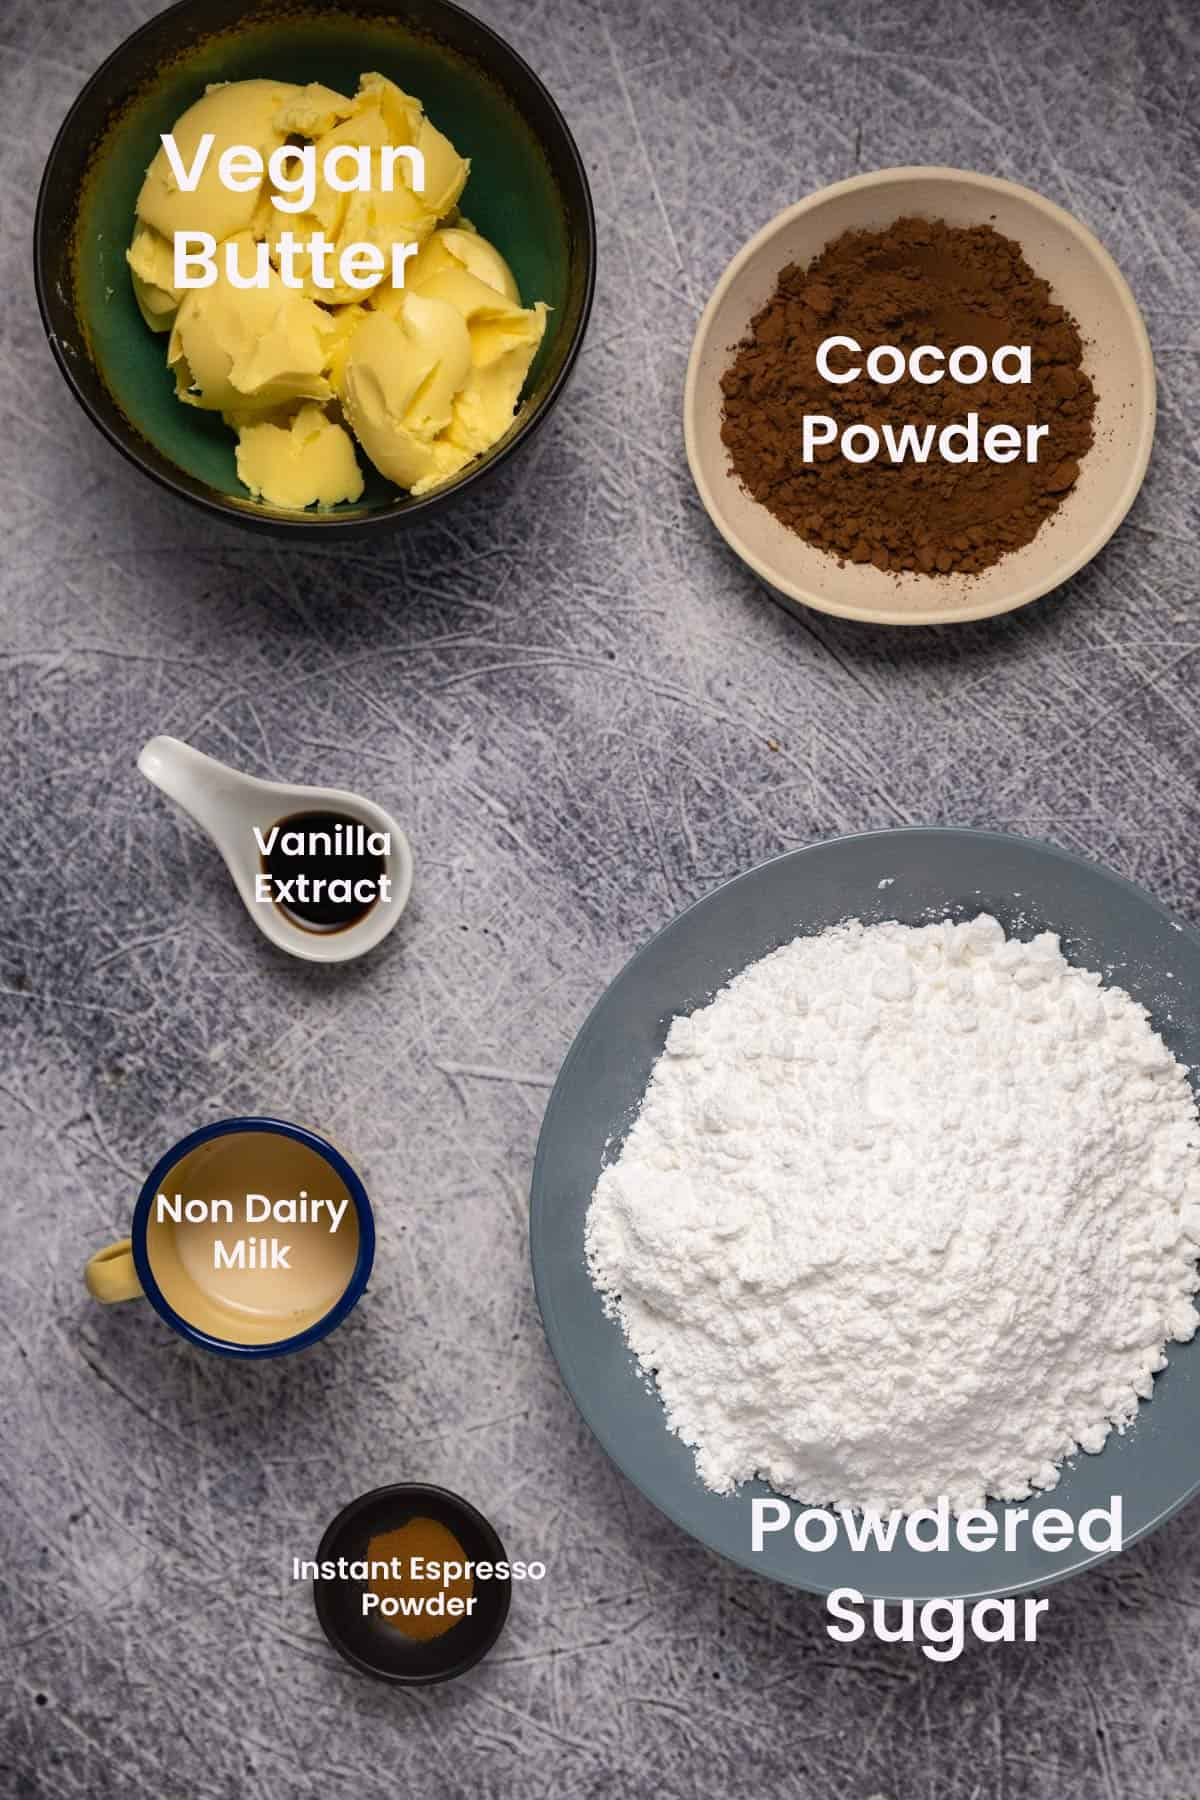 Photo of the ingredients needed to make chocolate buttercream frosting.